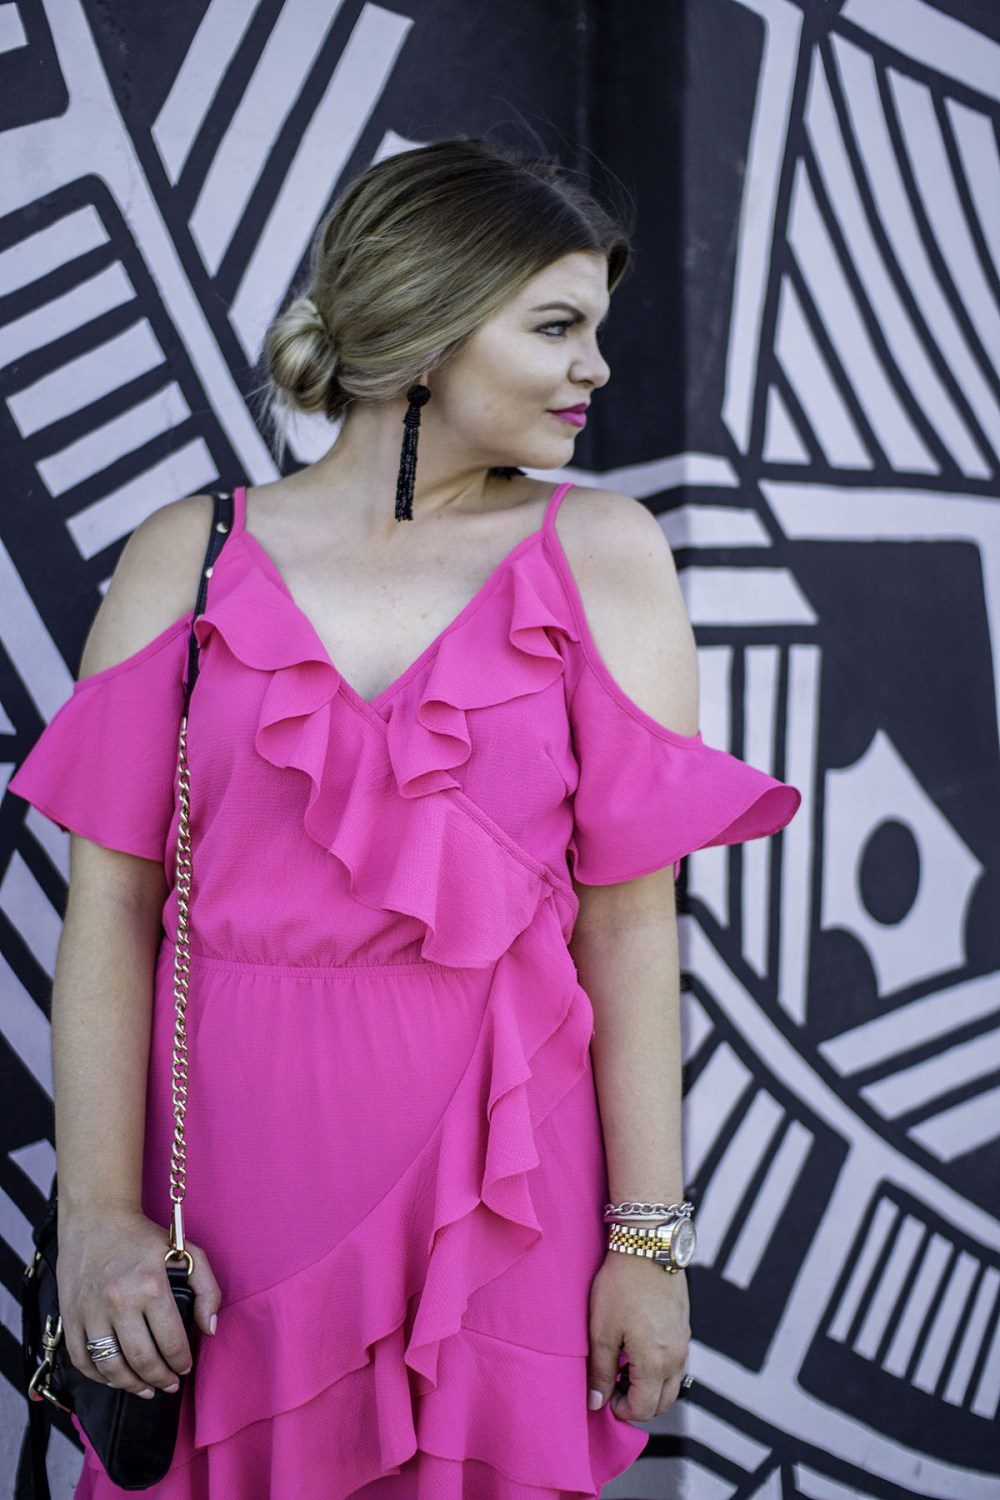 Colorful Cold Shoulder Dress: Spicing Up Your Summer Wardrobe with Pops of Color by TN fashion blogger The Glitter Gospel